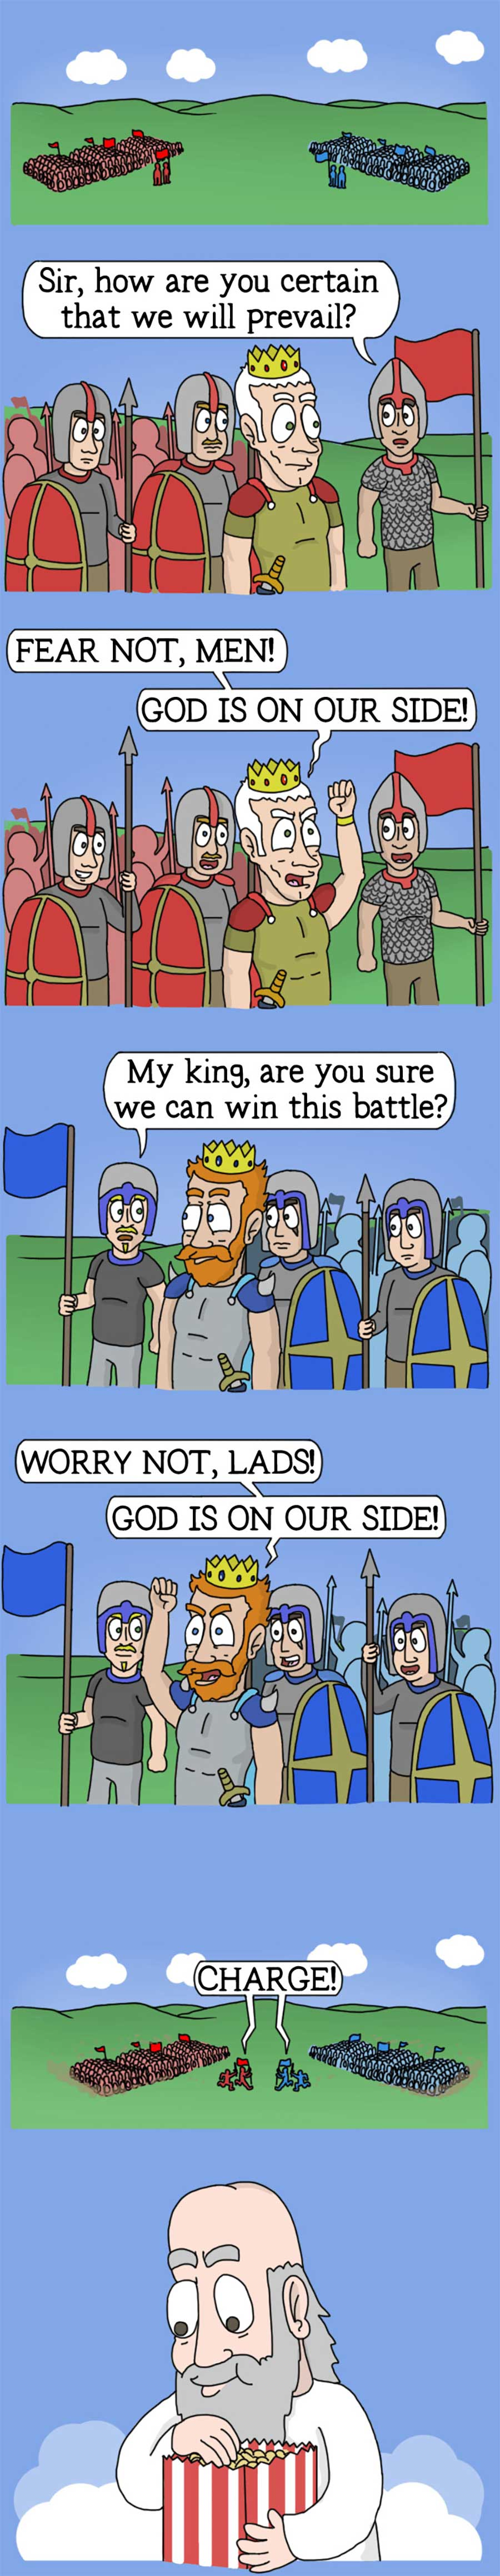 Lustiger Webcomic: Adventures of God adventures-of-god-webcomic_06